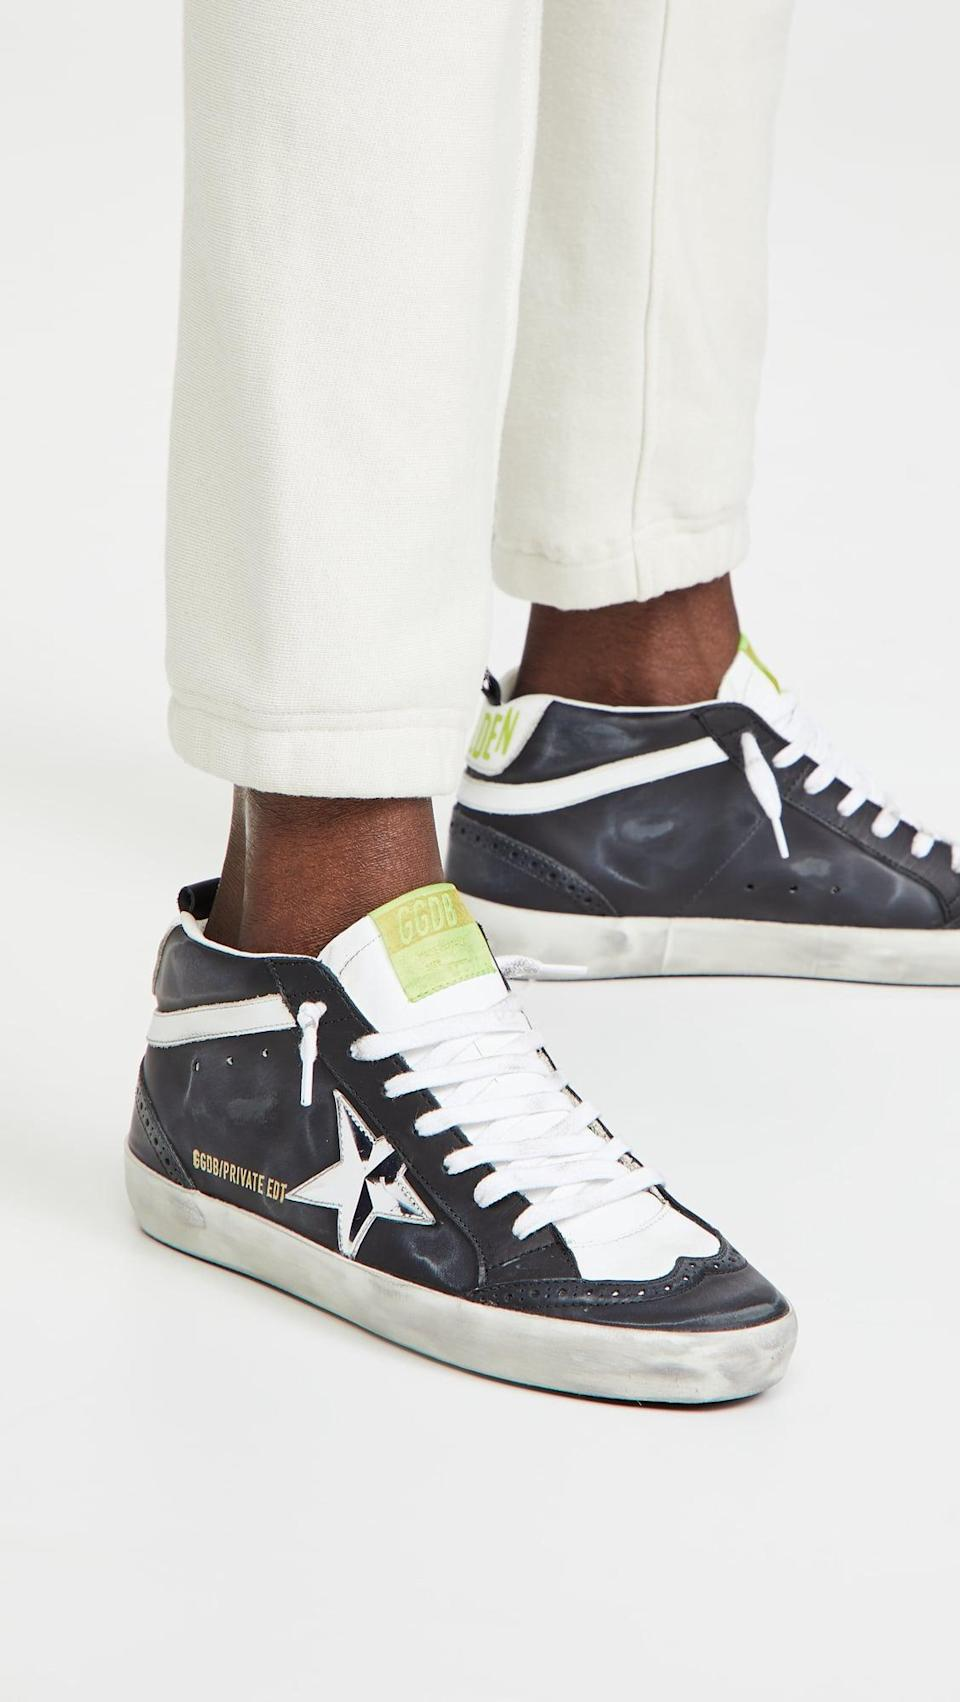 <p>If you feel like splurging on a sneaker, go for these cool <span>Golden Goose Midstar Sneakers</span> ($560). They're so flattering on the foot, and we've walked miles in ours.</p>